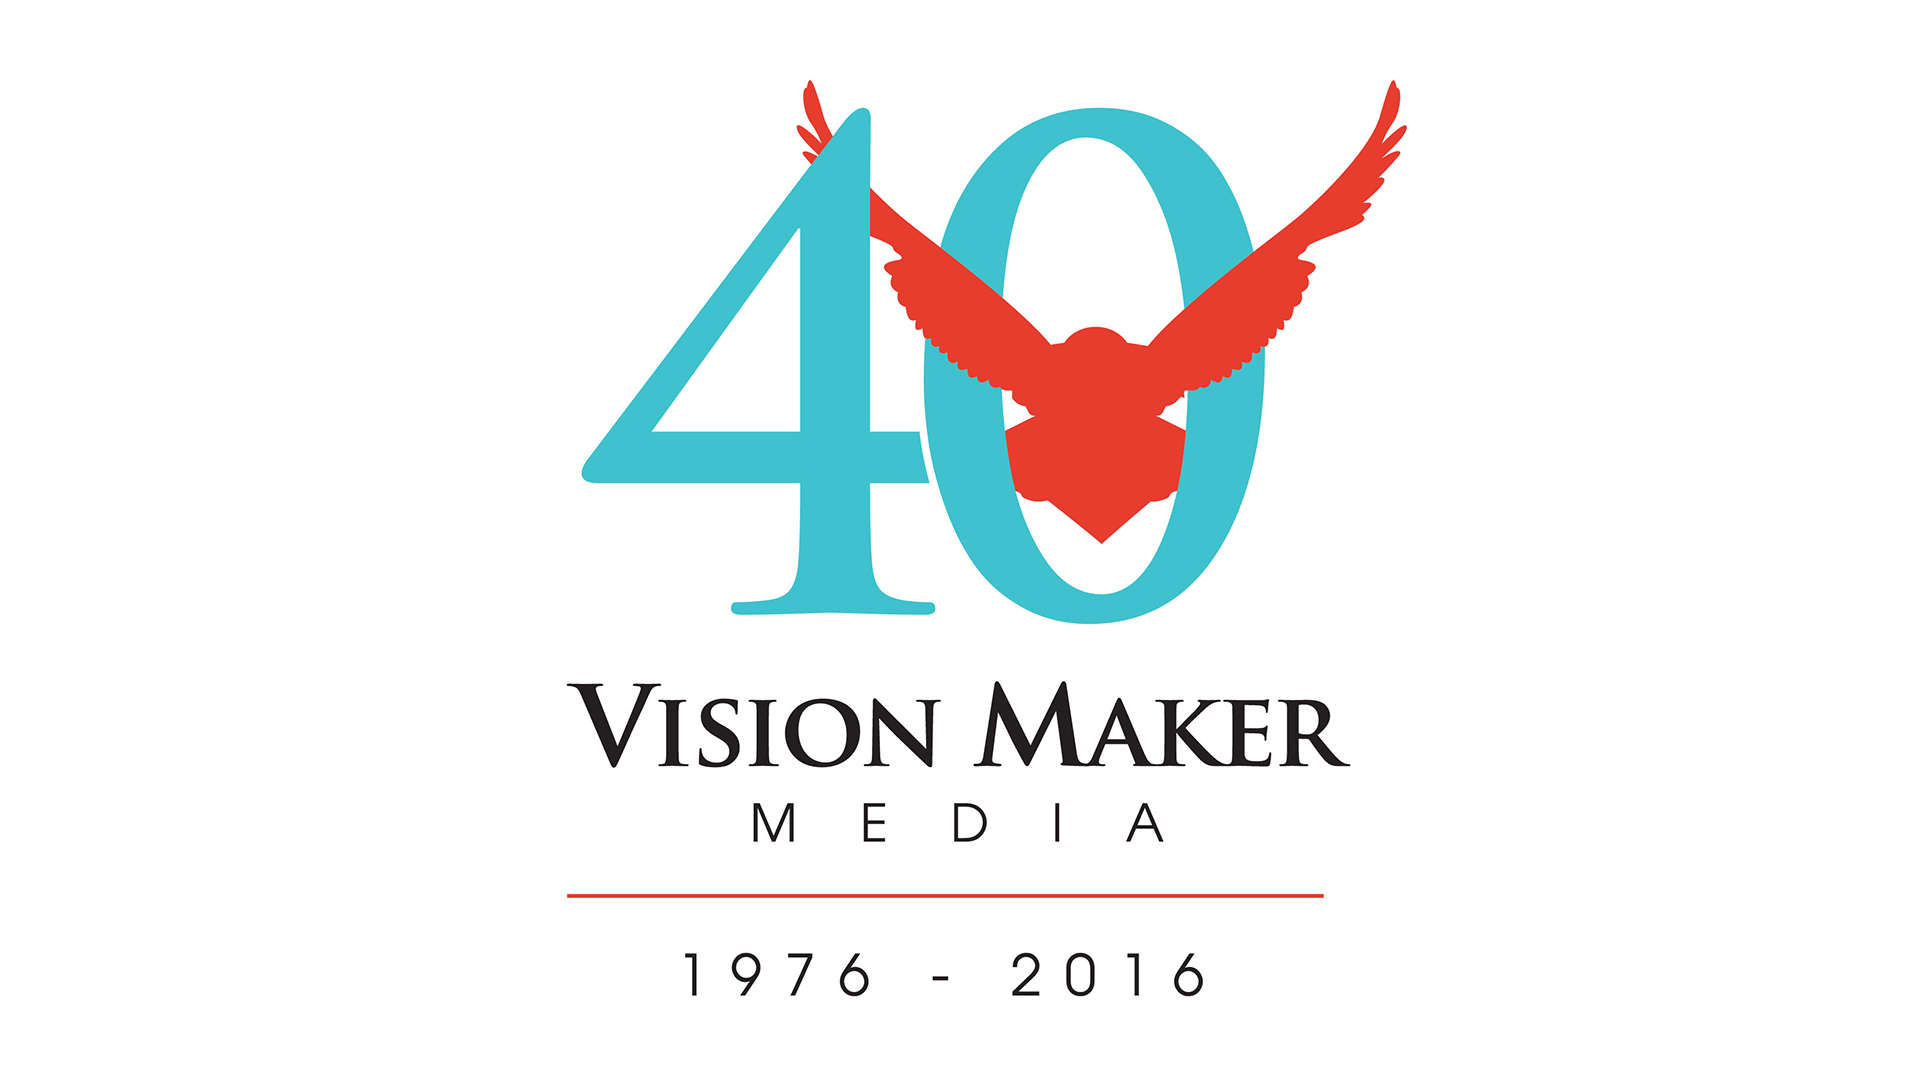 The logo for Vision Maker Media.